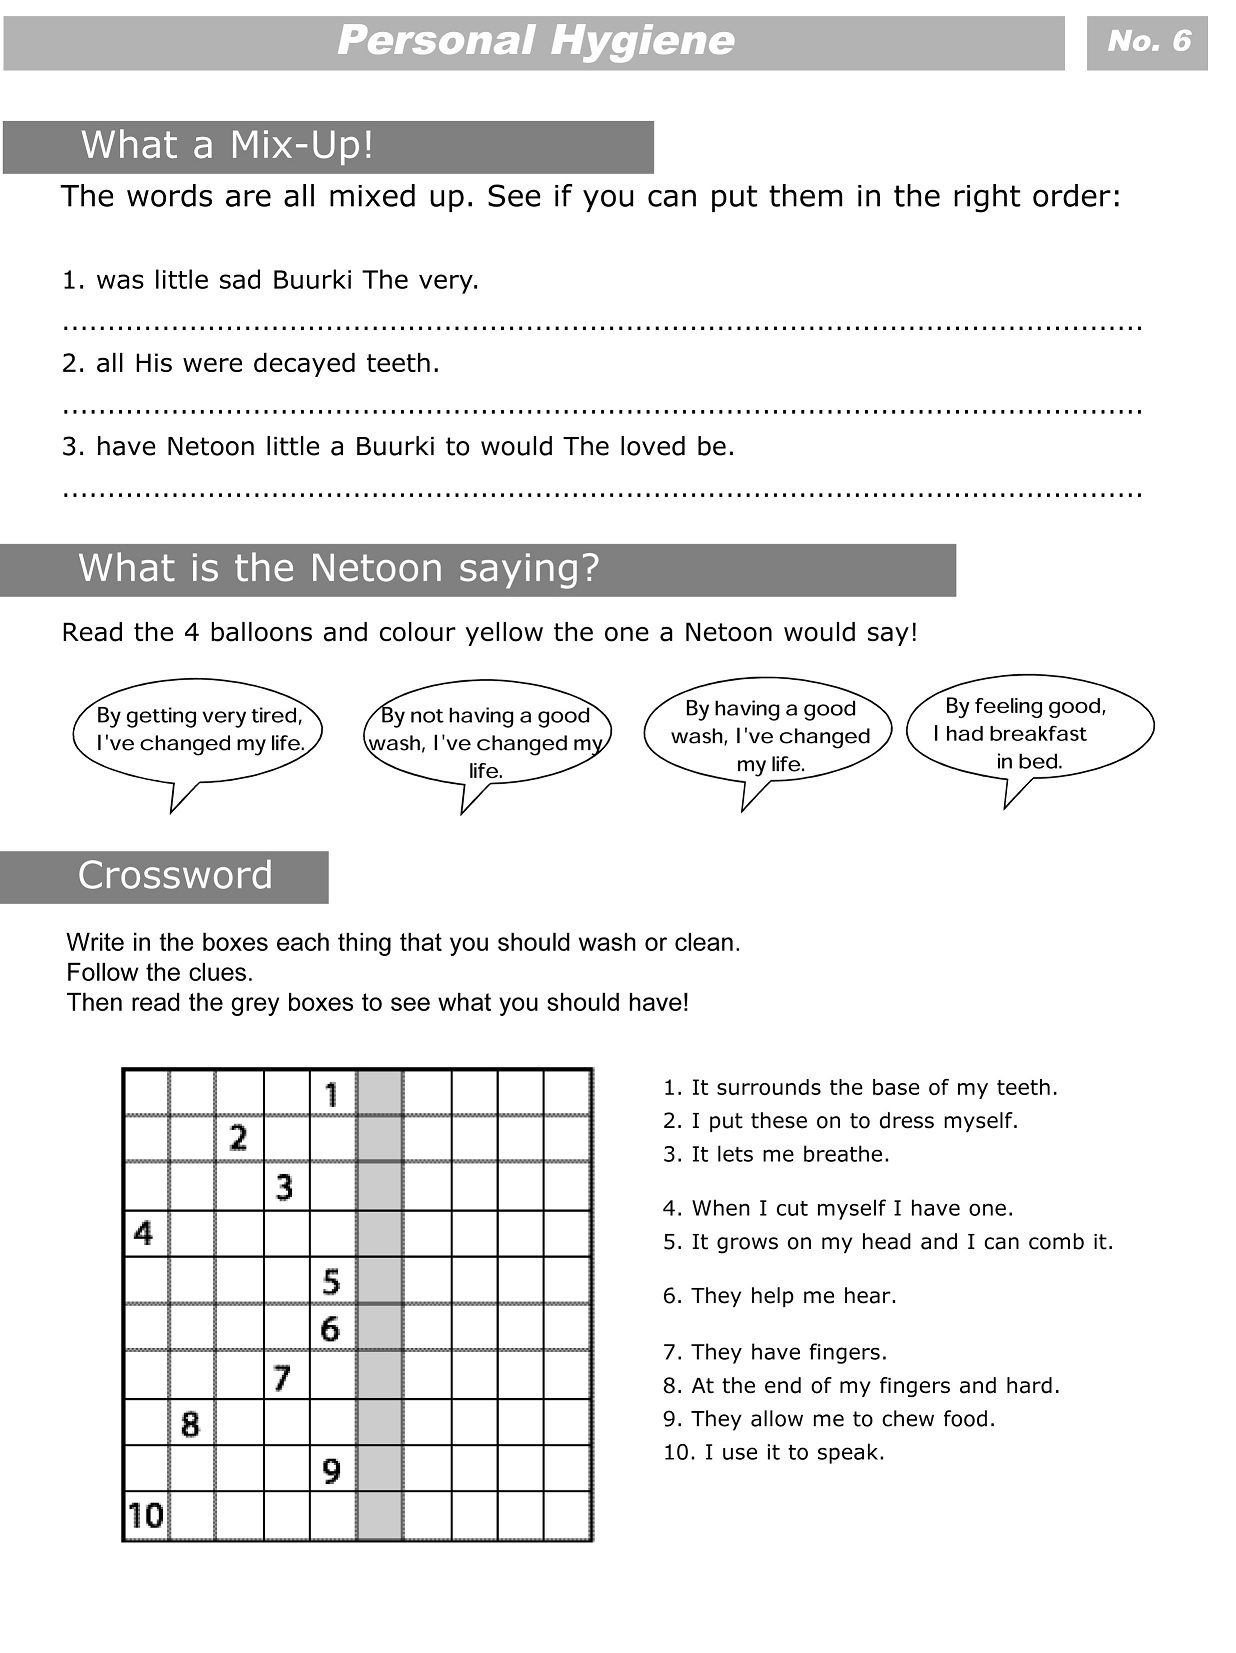 hight resolution of PERSONAL HYGIENE (SHEET 6 OF 7)   Personal hygiene worksheets